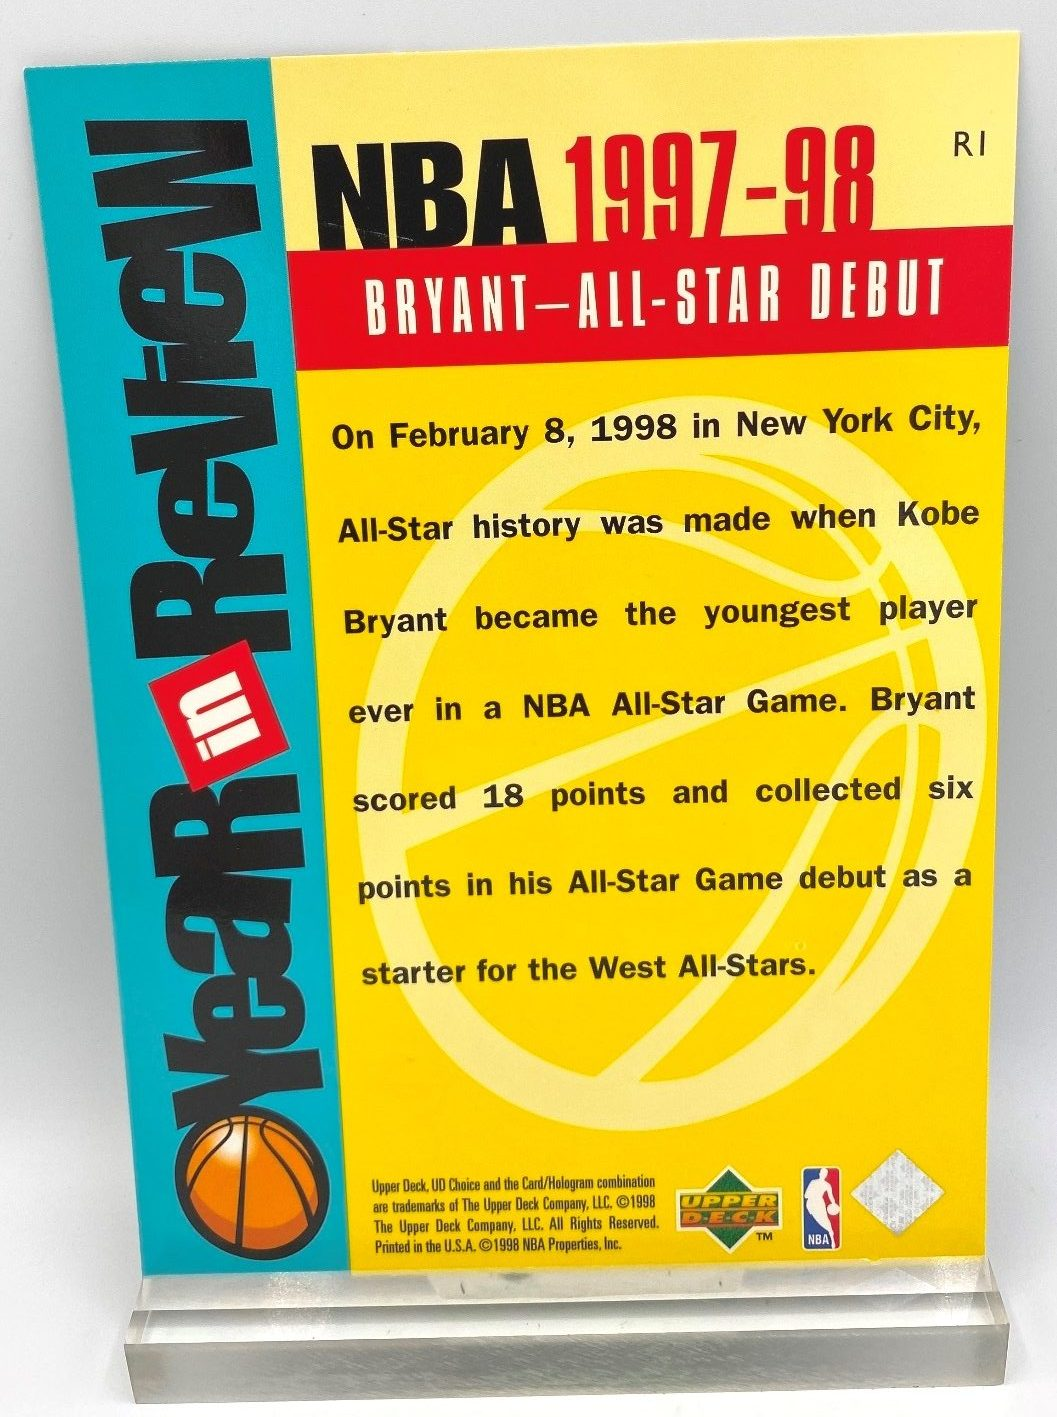 1997-98 Upper Deck All-Star Debut (Kobe Bryant) Year In Review 5x7 (1pc) Card # R1 (4)